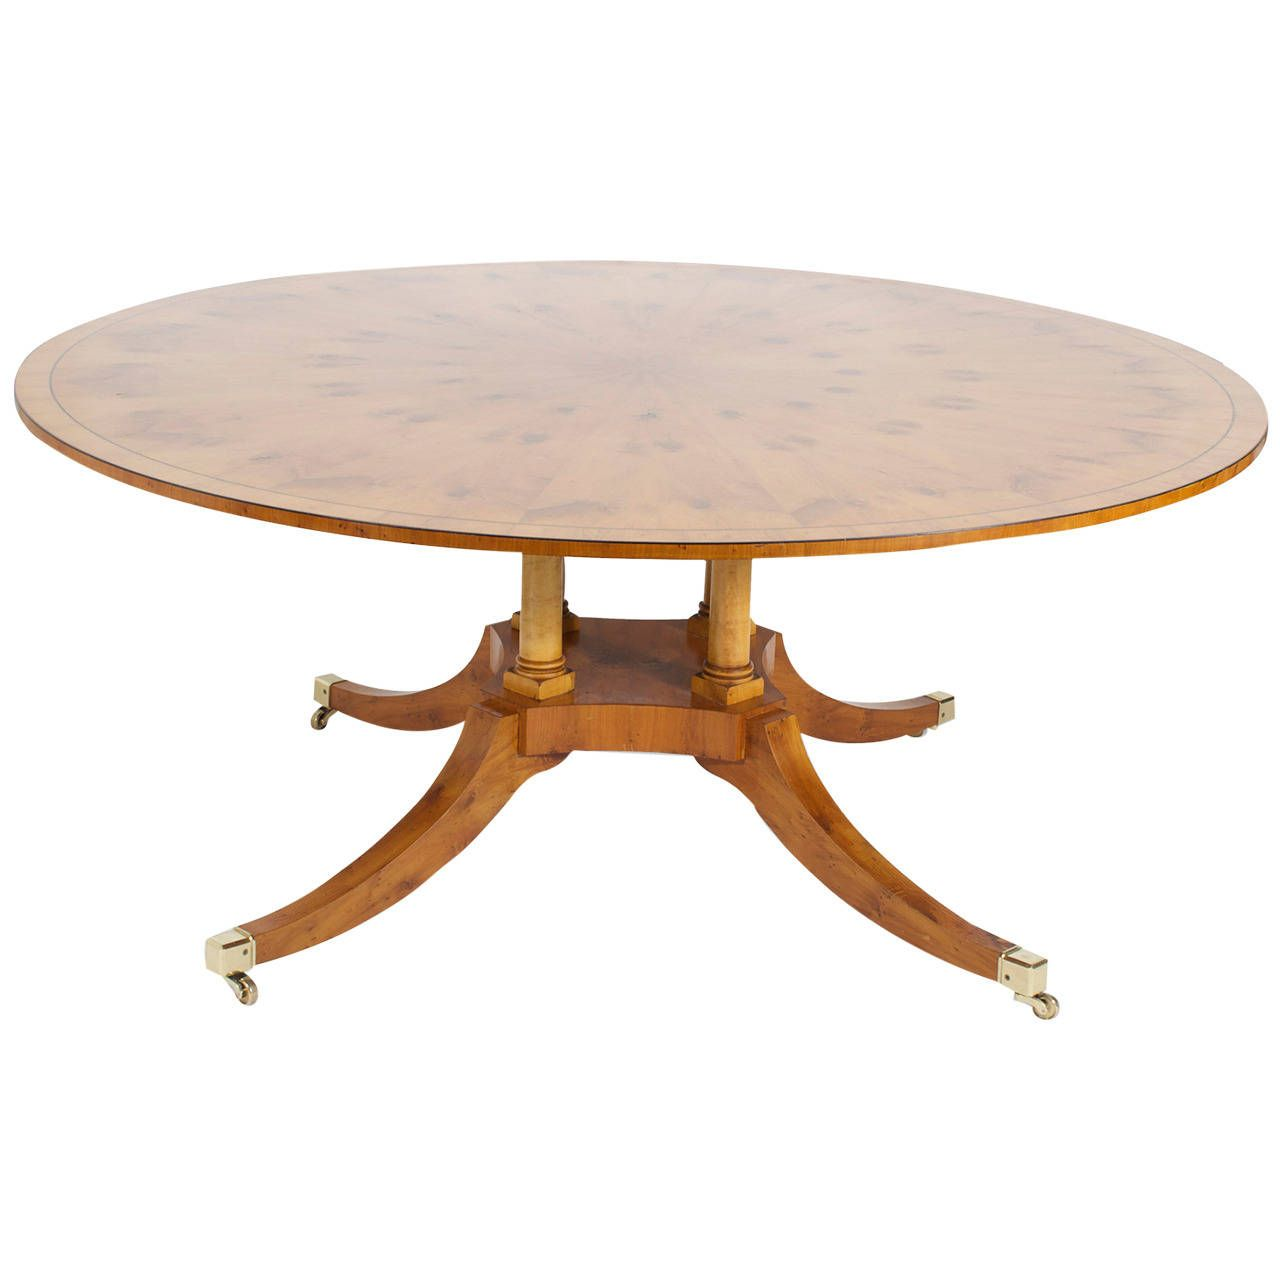 20th Century Round Yew Wood Regency Style Dining Table From A